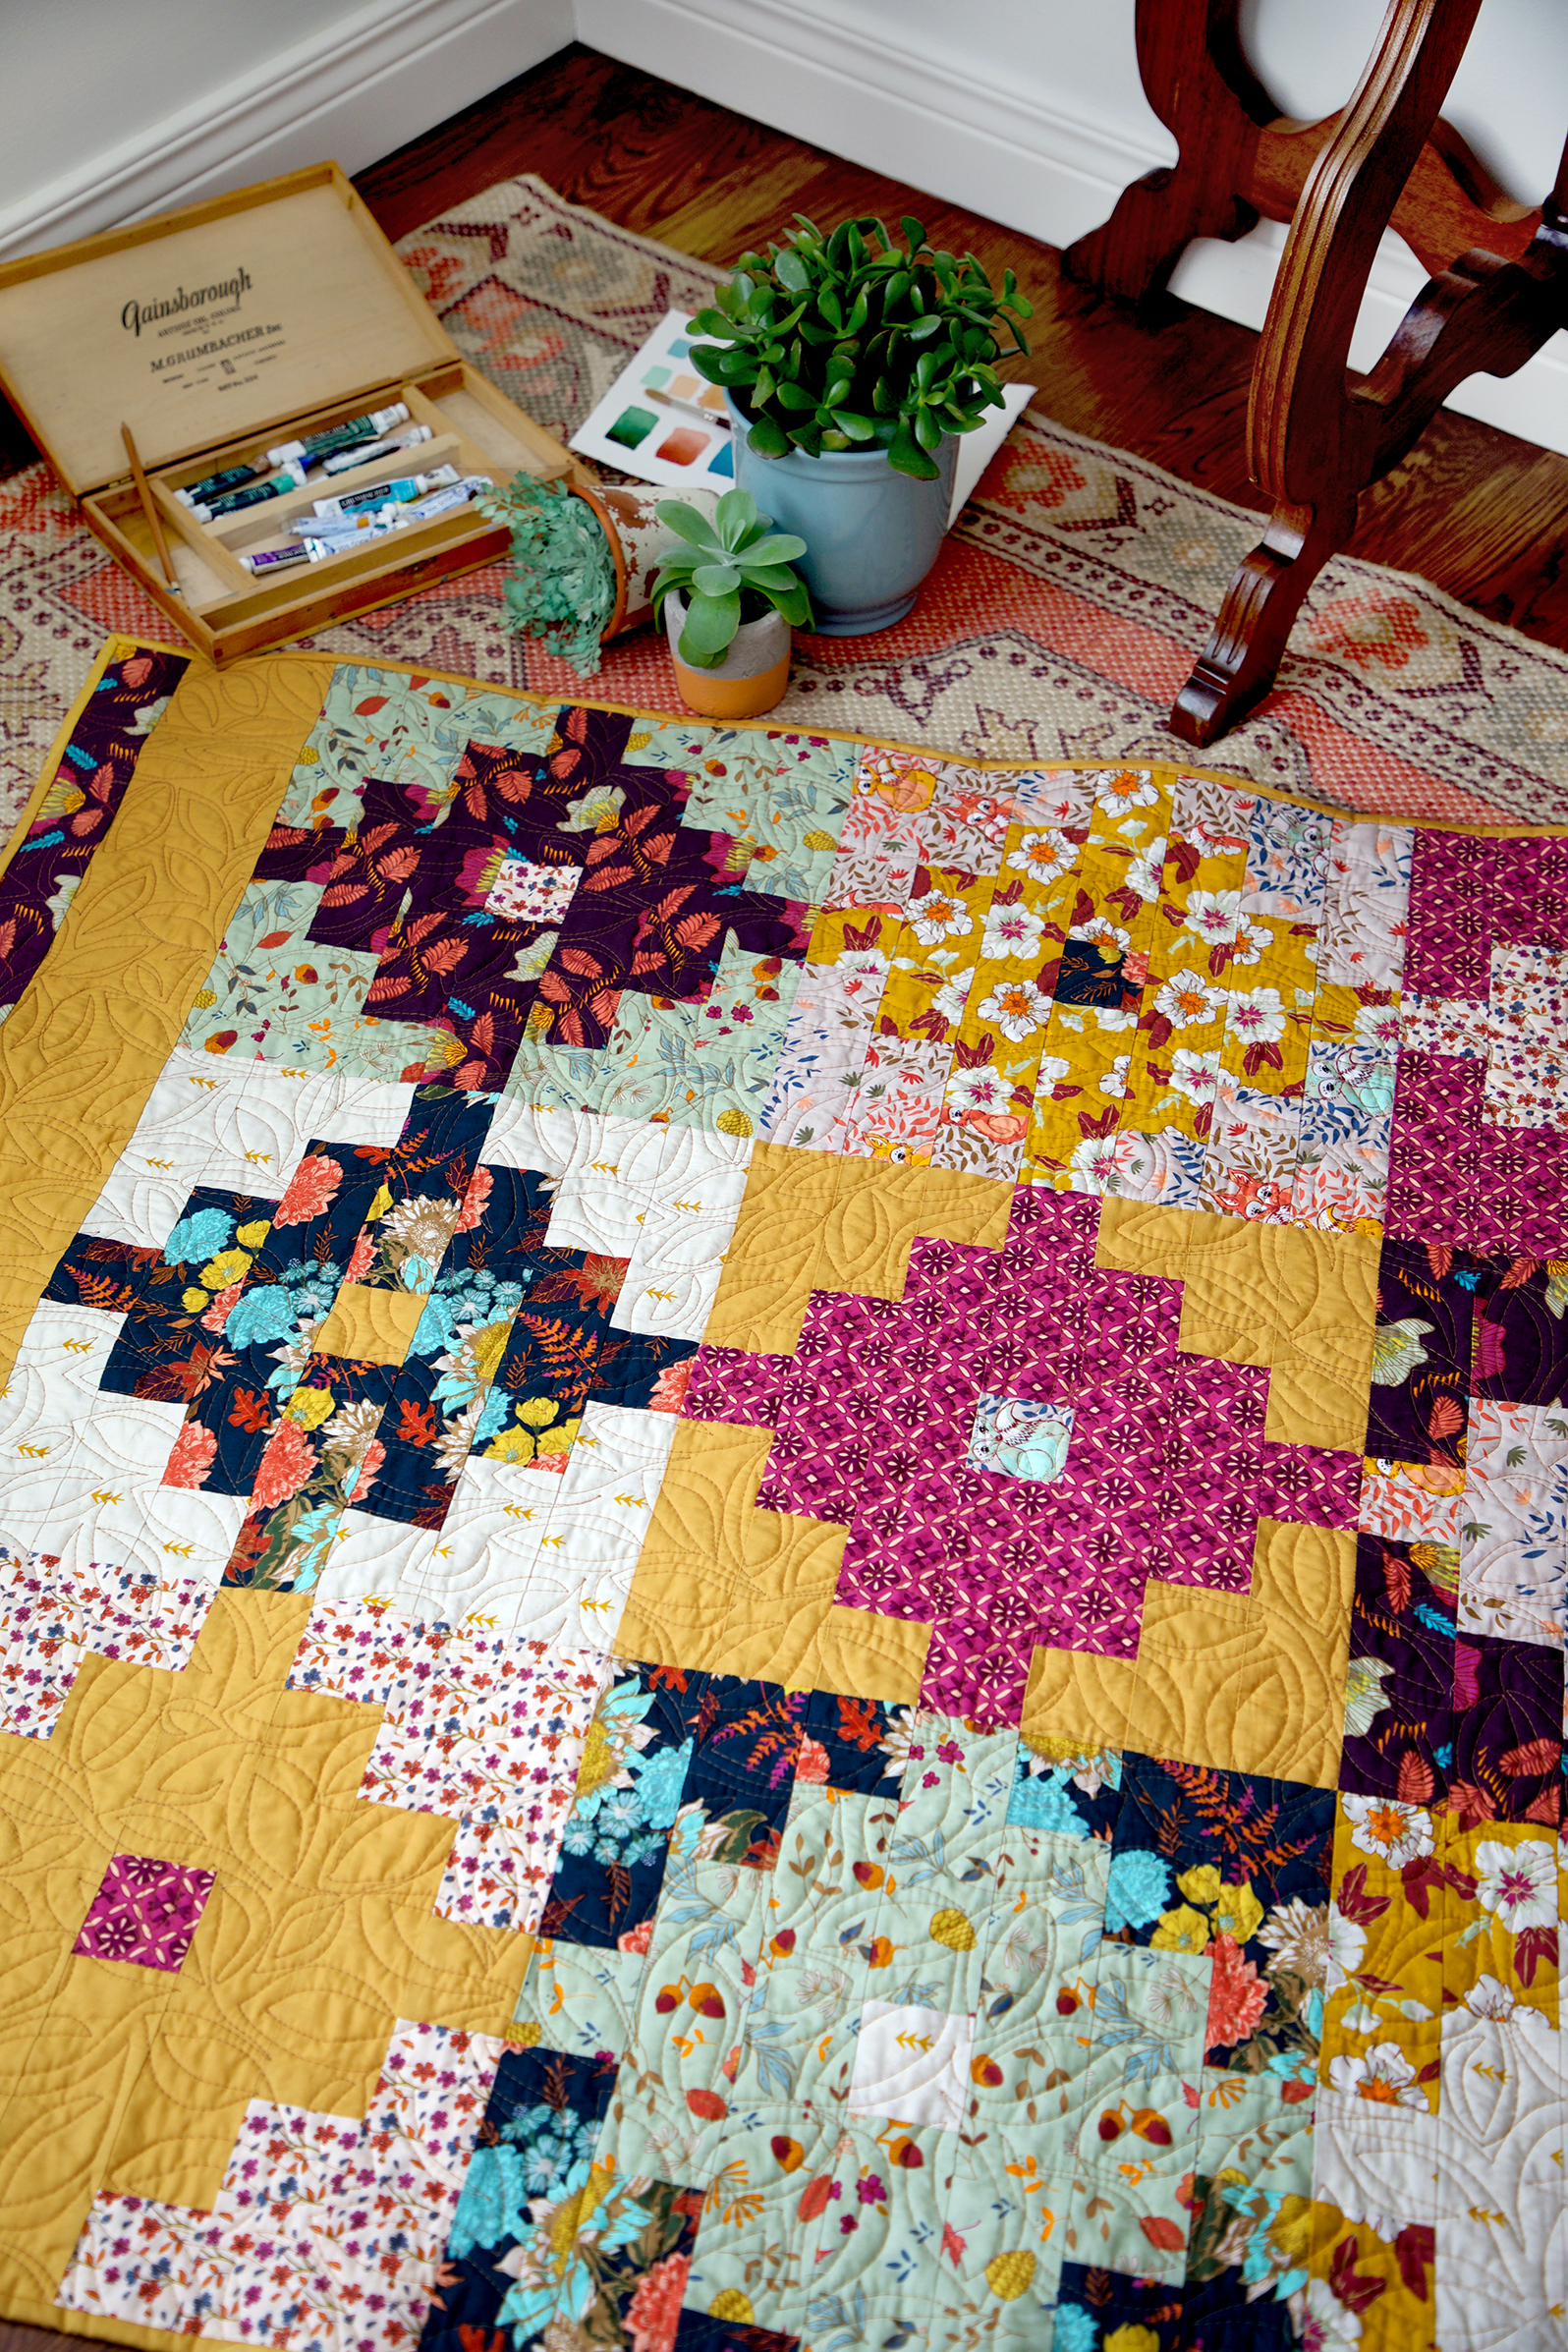 Wild Honey quilt on floor small.jpg